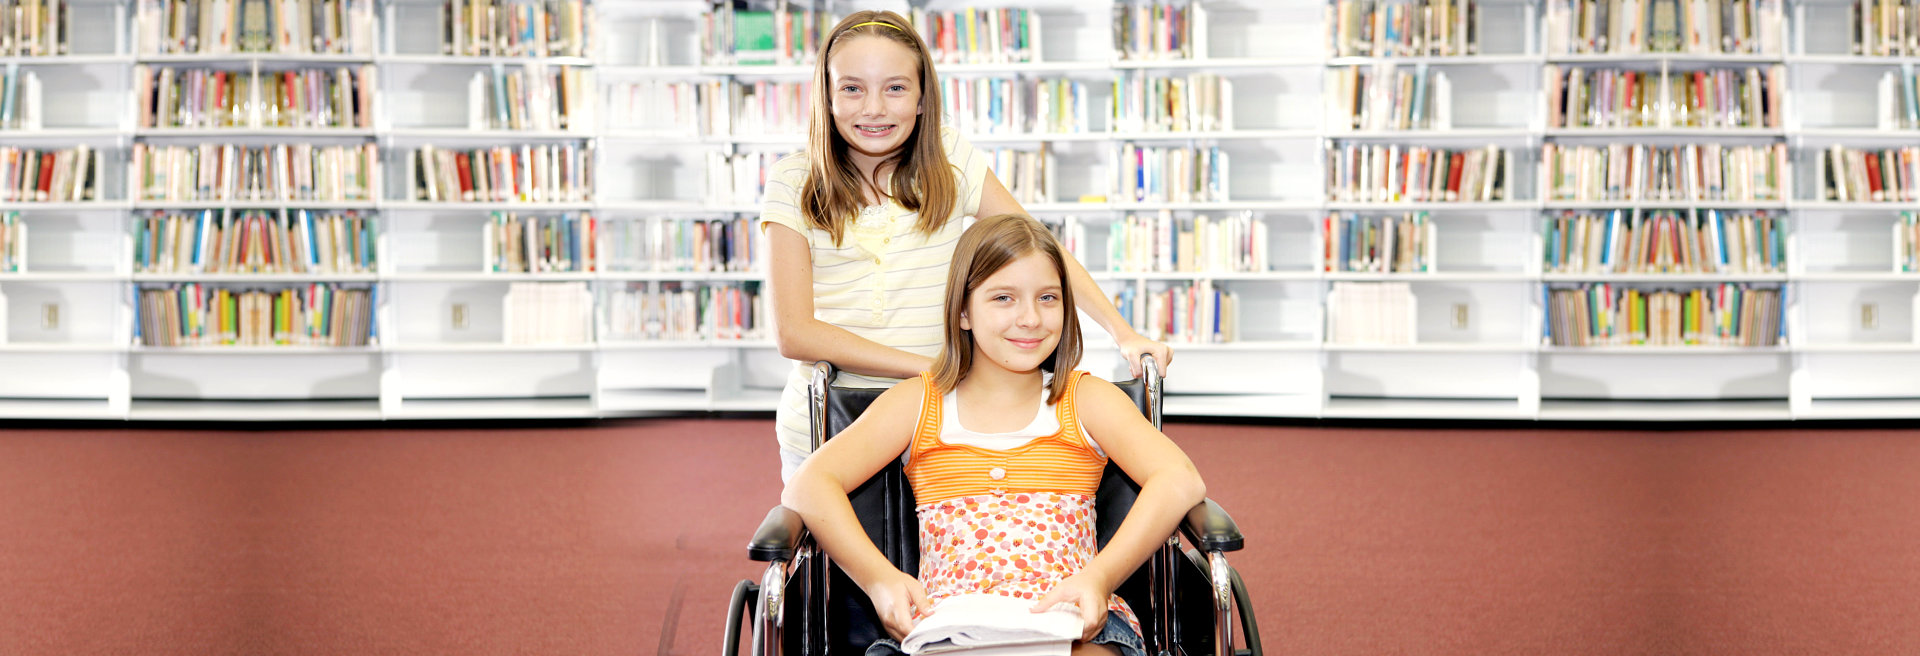 girl on a wheelchair with her friend